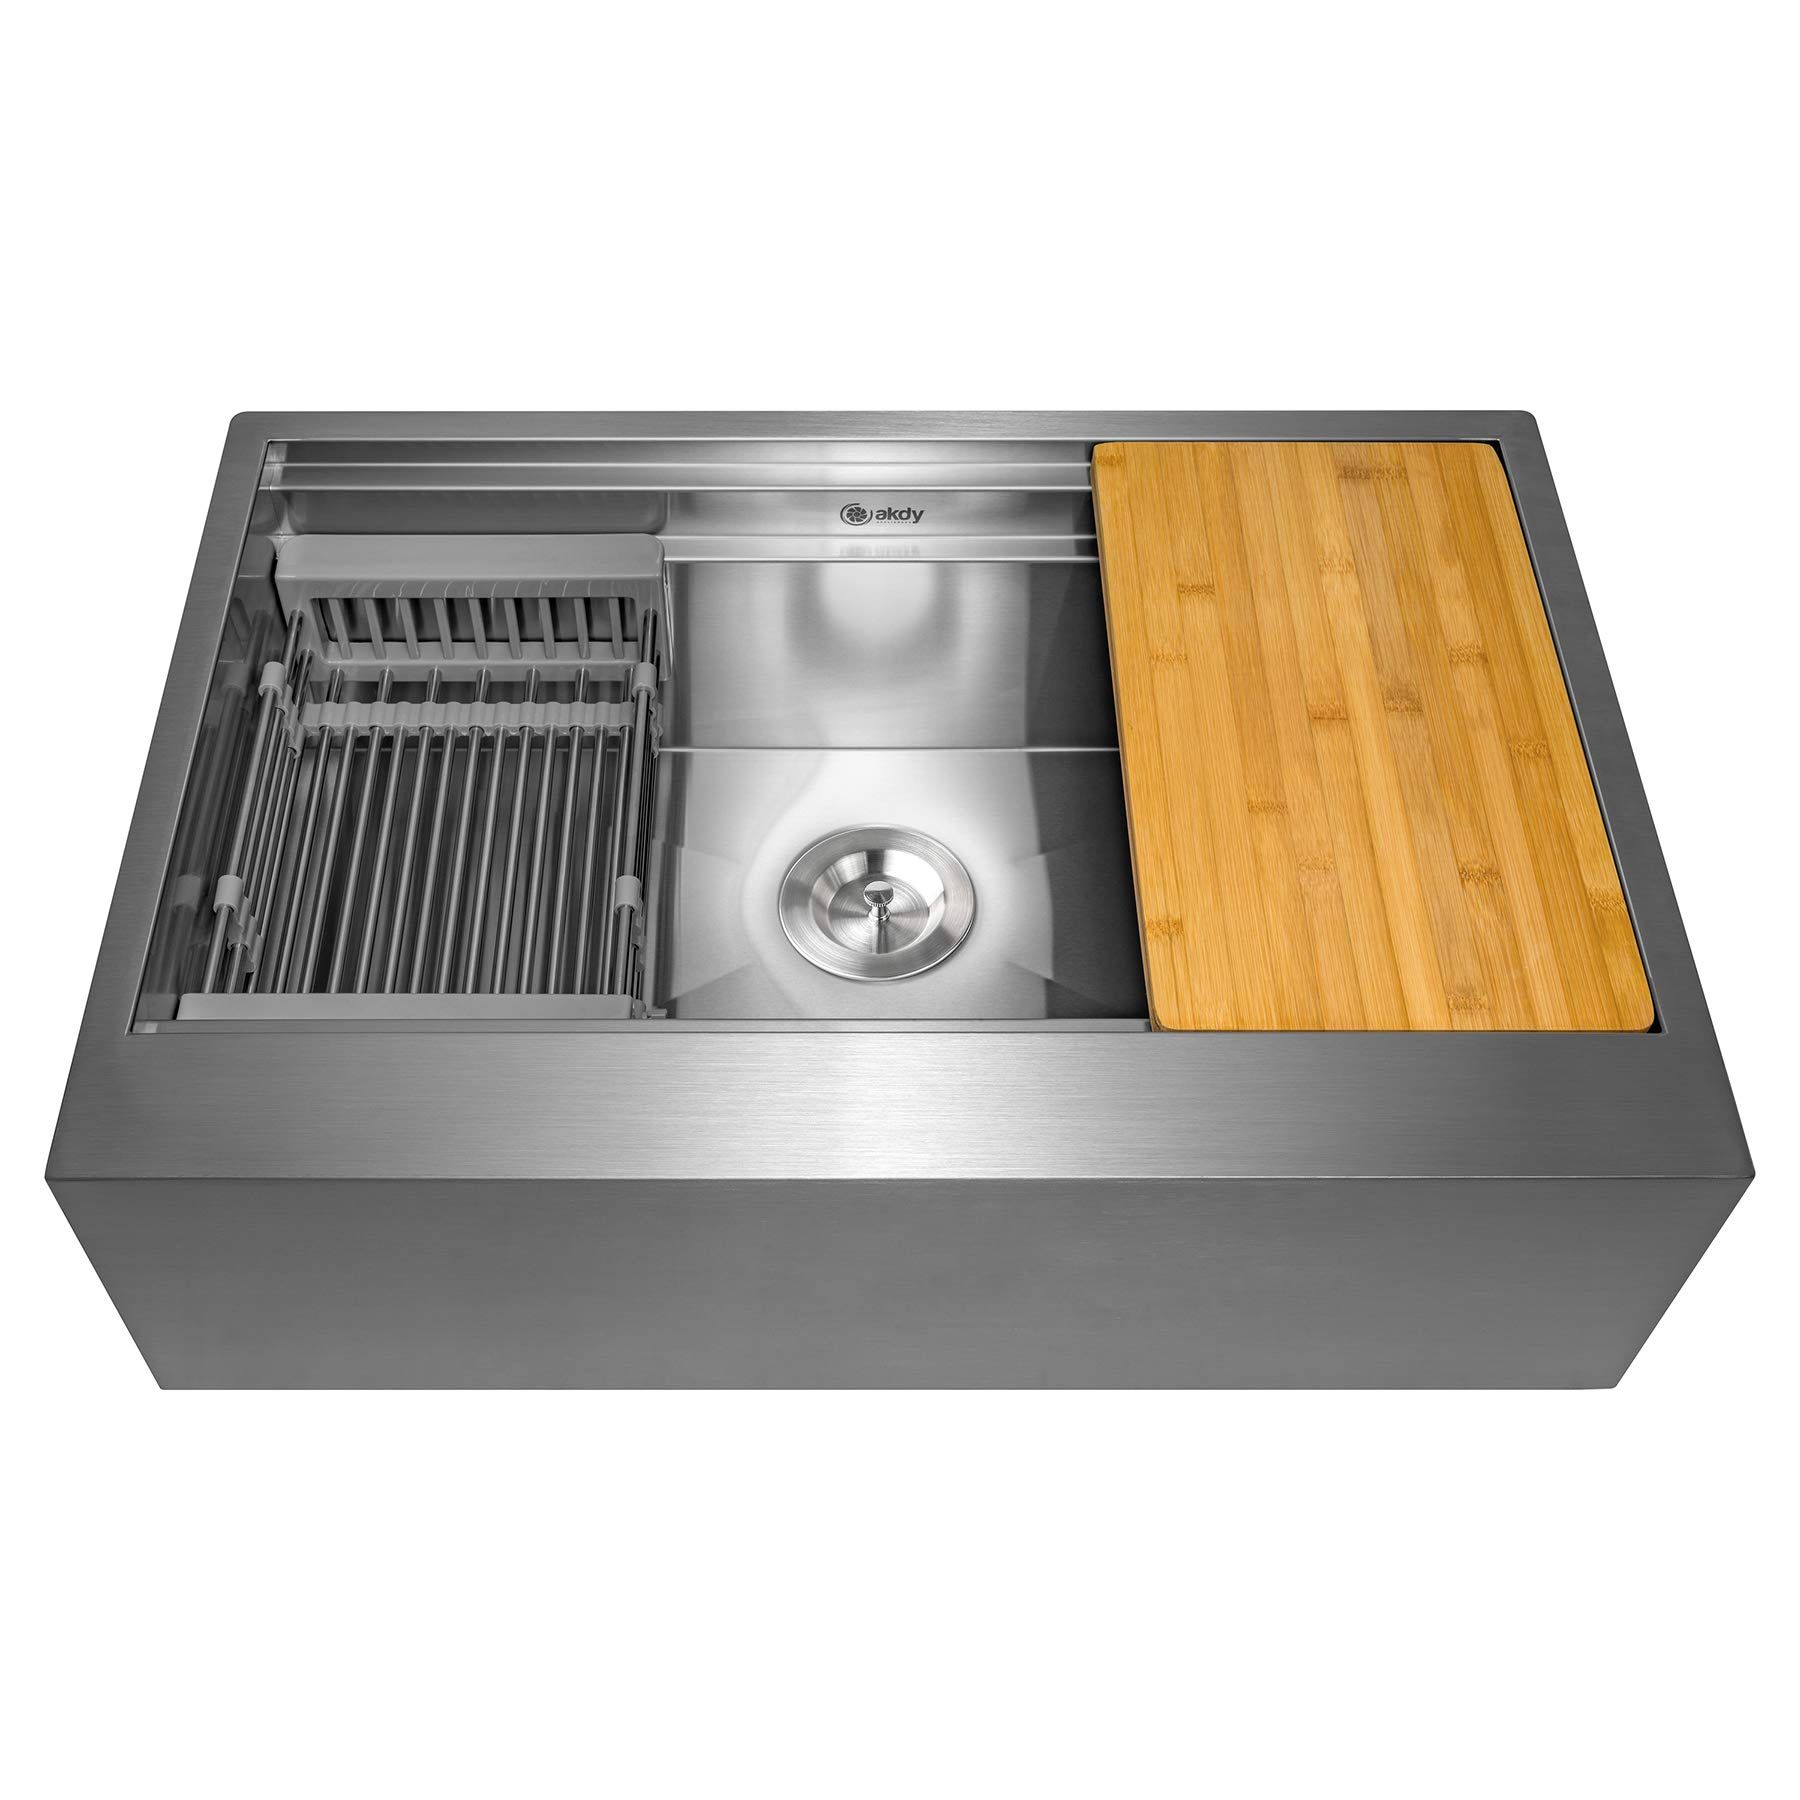 AKDY KS0243 33-Inch (33''x20''x9'') Apron Farmhouse Handmade Stainless Steel Kitchen Sink- Single Bowl Space Saving Kitchen Sink - Kitchen Sink with Drain Strainer Kit Adjustable Tray and Cutting Board